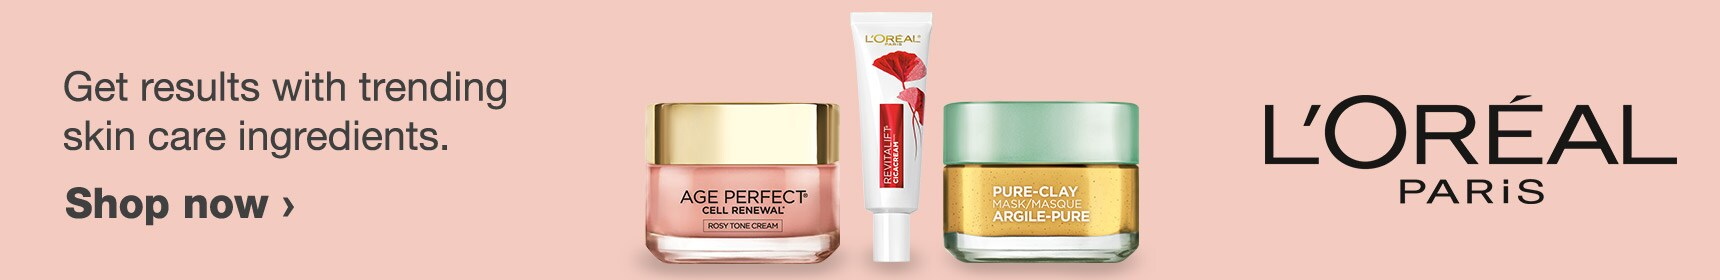 Get results with trending skin care ingredients. L'Oreal Paris. Shop now.